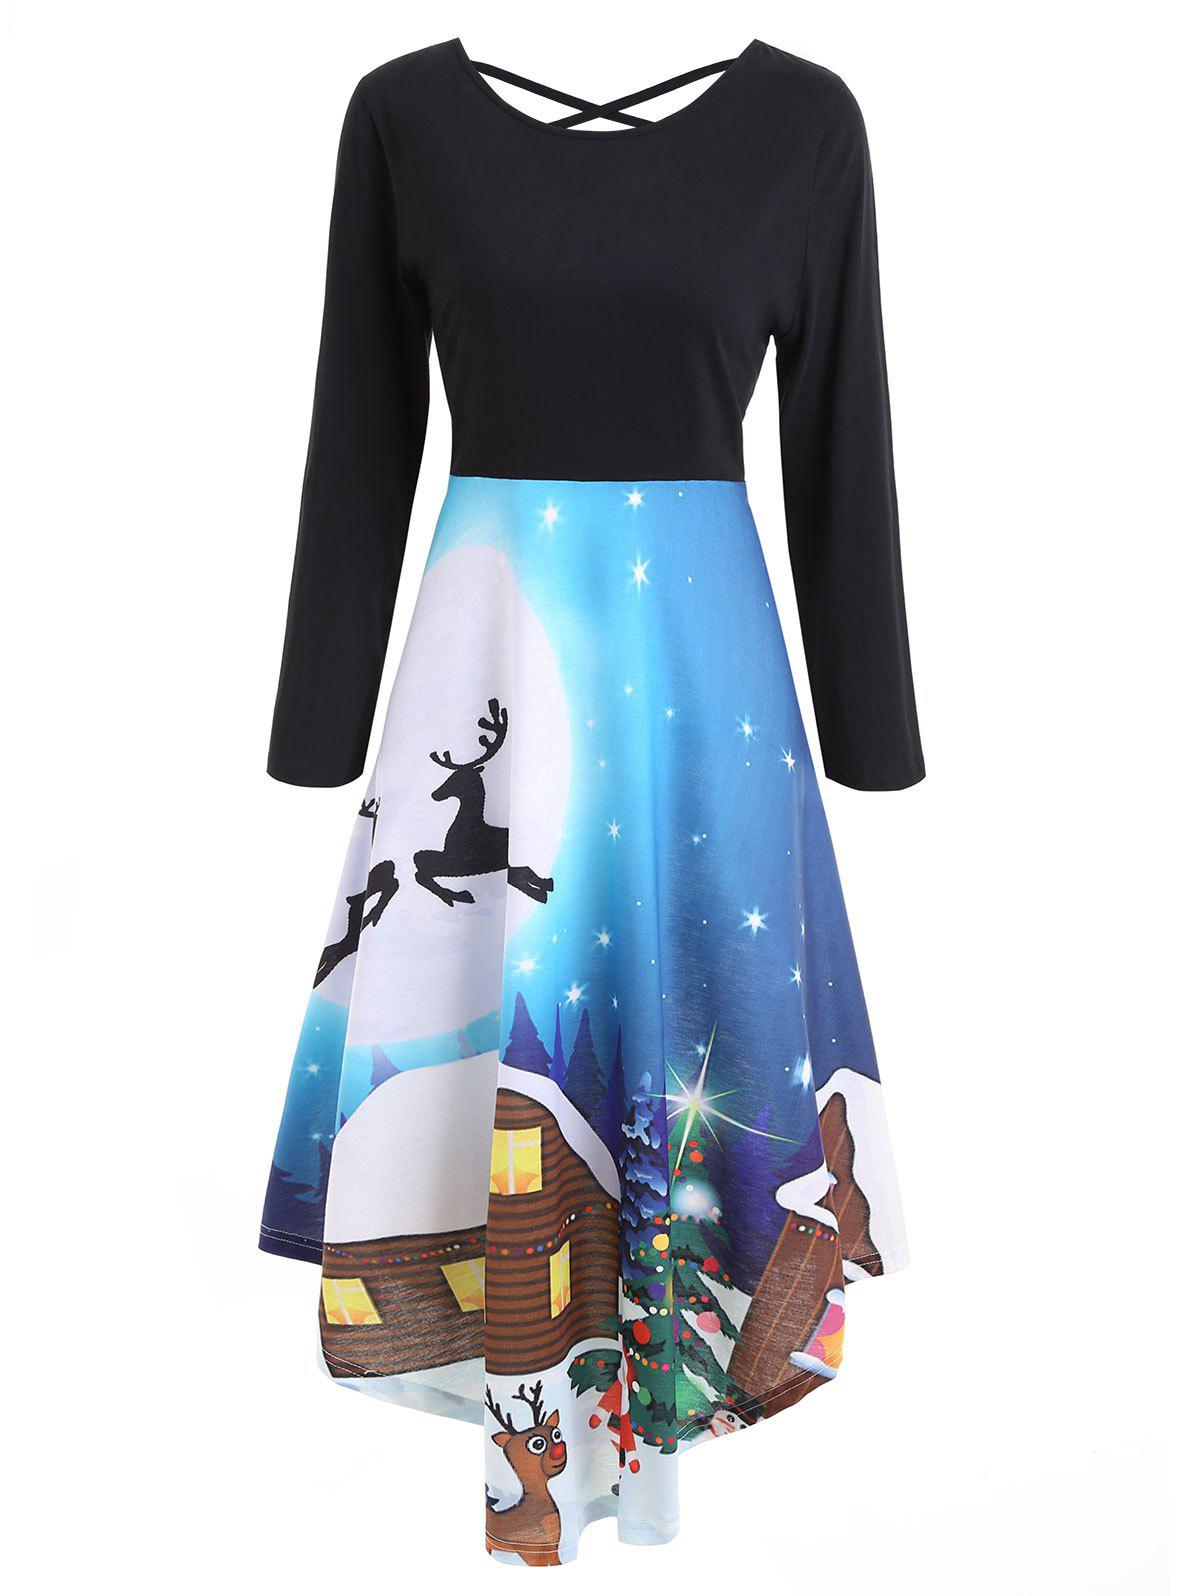 Christmas Print Long Sleeve Flare DressWOMEN<br><br>Size: L; Color: BLACK; Style: Casual; Material: Polyester; Silhouette: Fit and Flare; Dresses Length: Mid-Calf; Neckline: Scoop Neck; Sleeve Length: Long Sleeves; Embellishment: Criss-Cross; Pattern Type: Print; With Belt: No; Season: Fall,Spring,Winter; Weight: 0.3600kg; Package Contents: 1 x Dress;